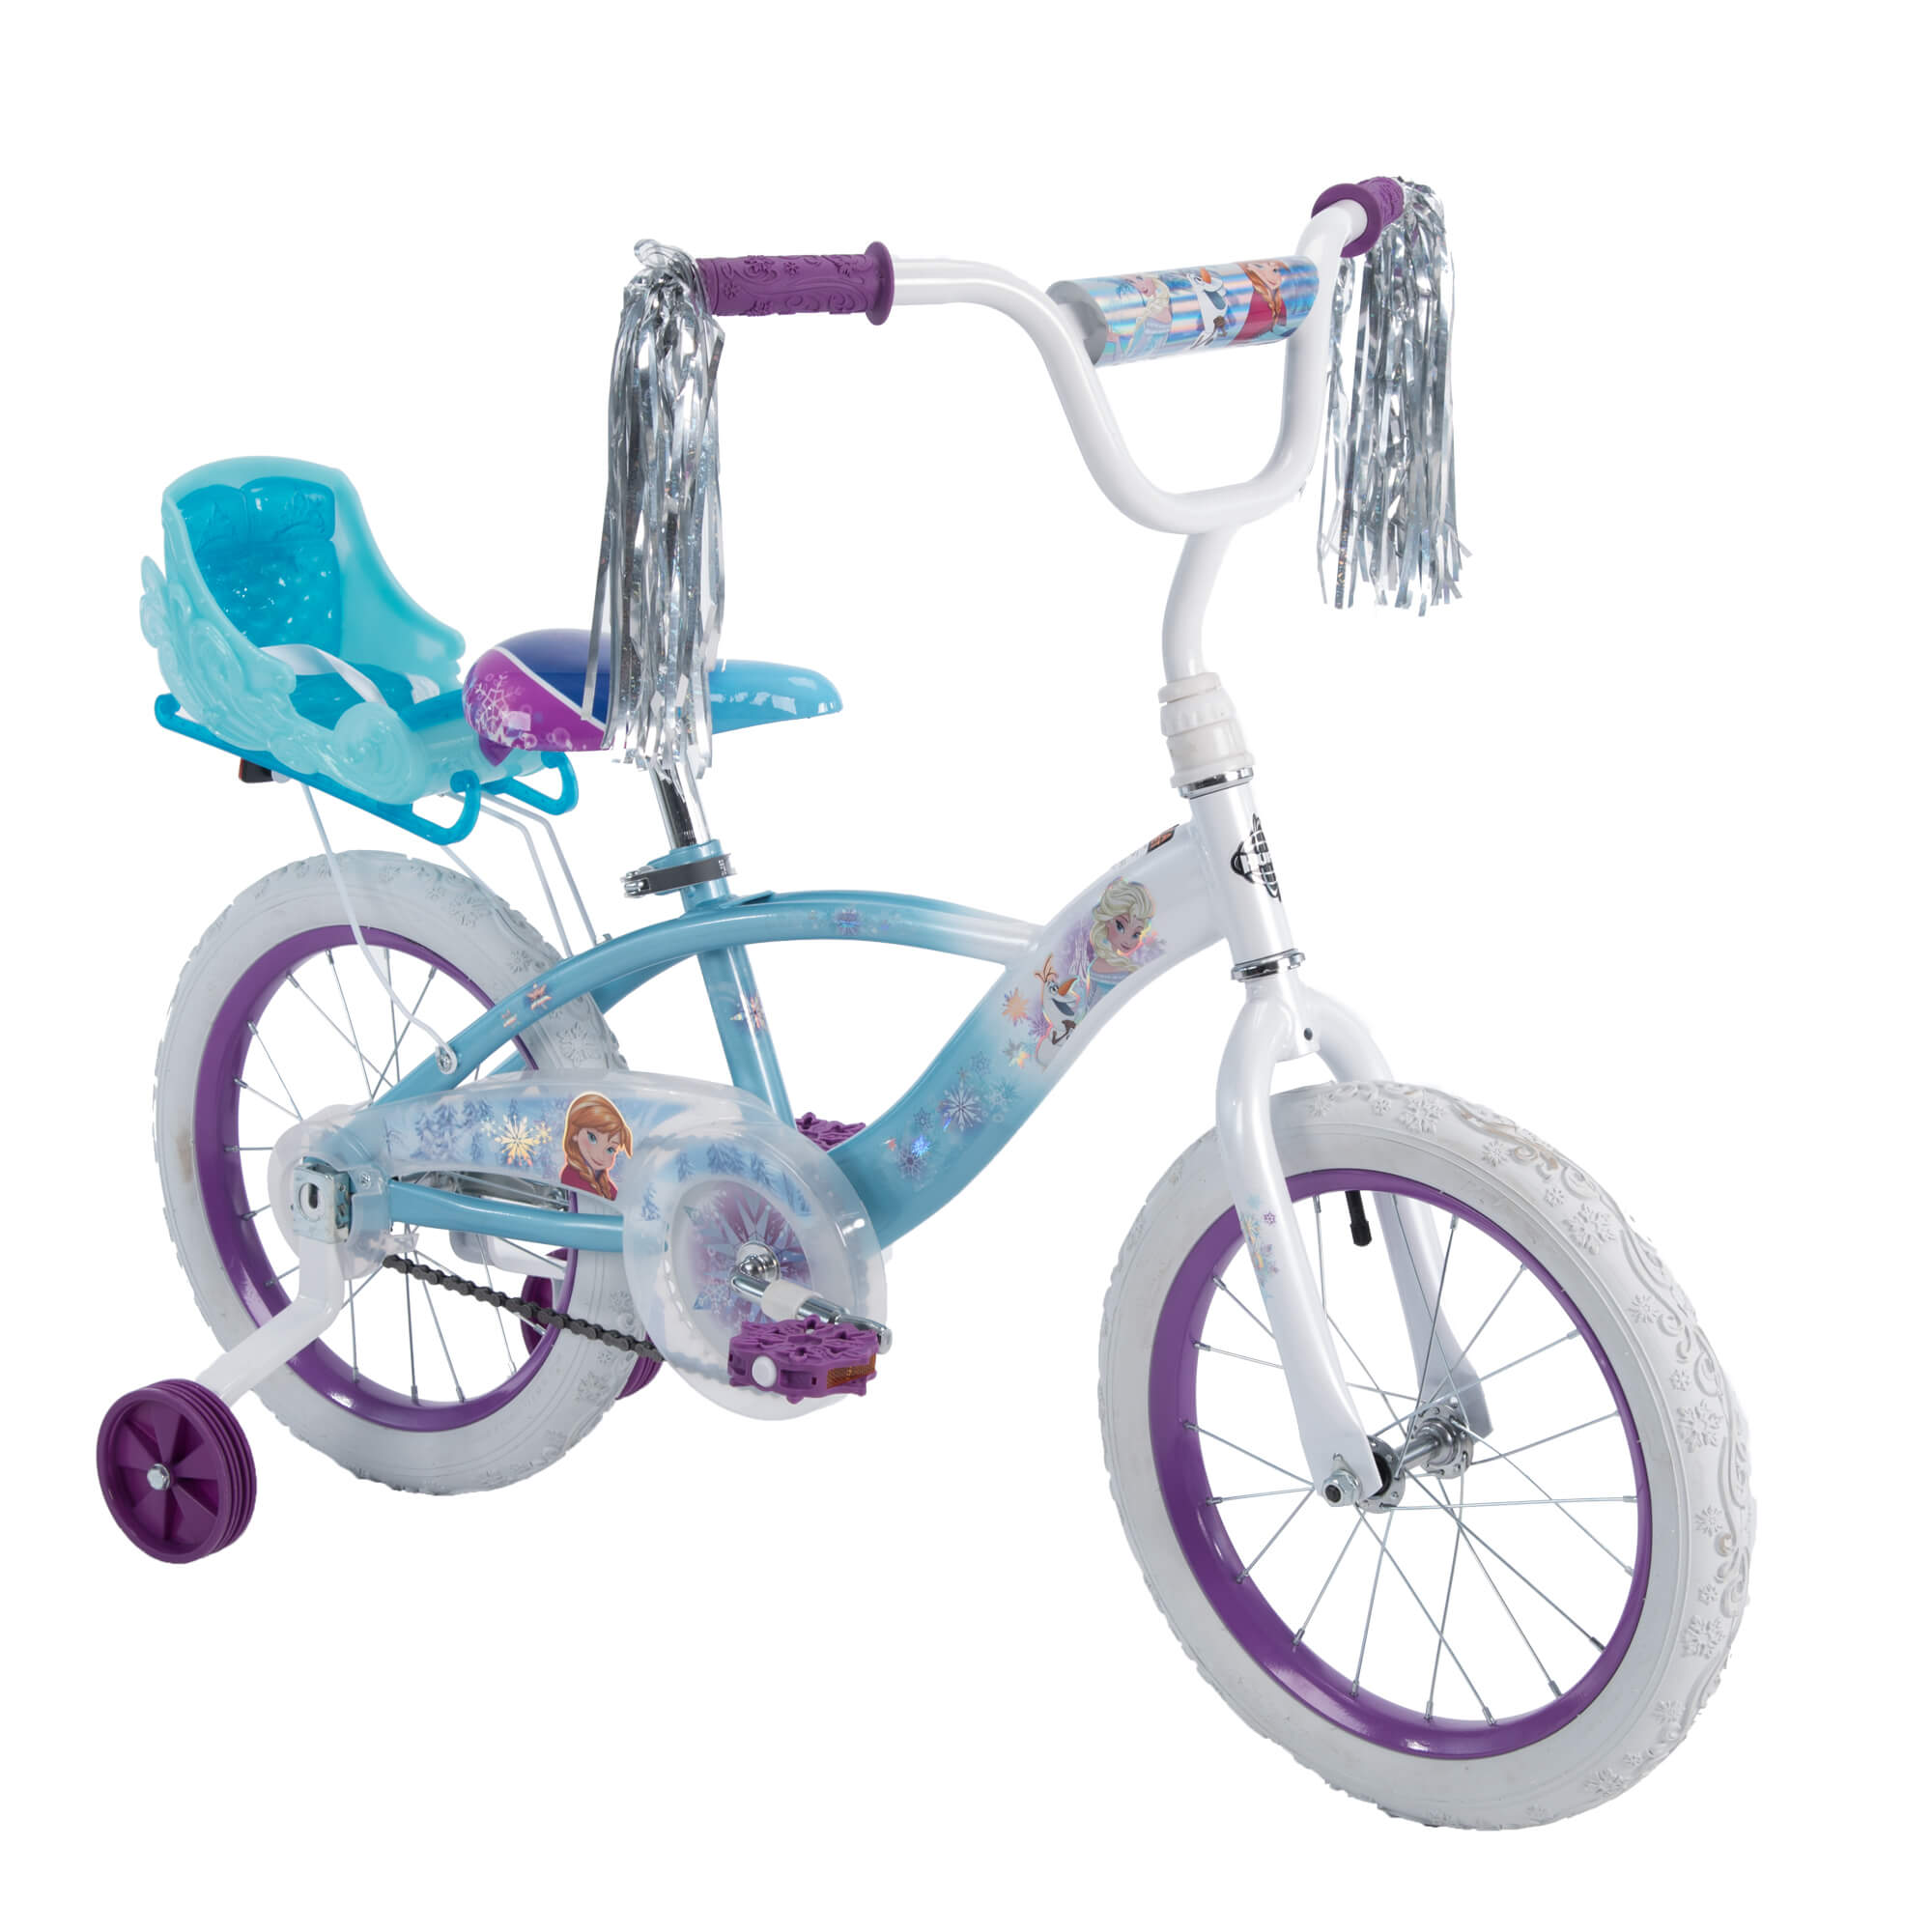 Disney Frozen 16-inch Girls' Bike by Huffy